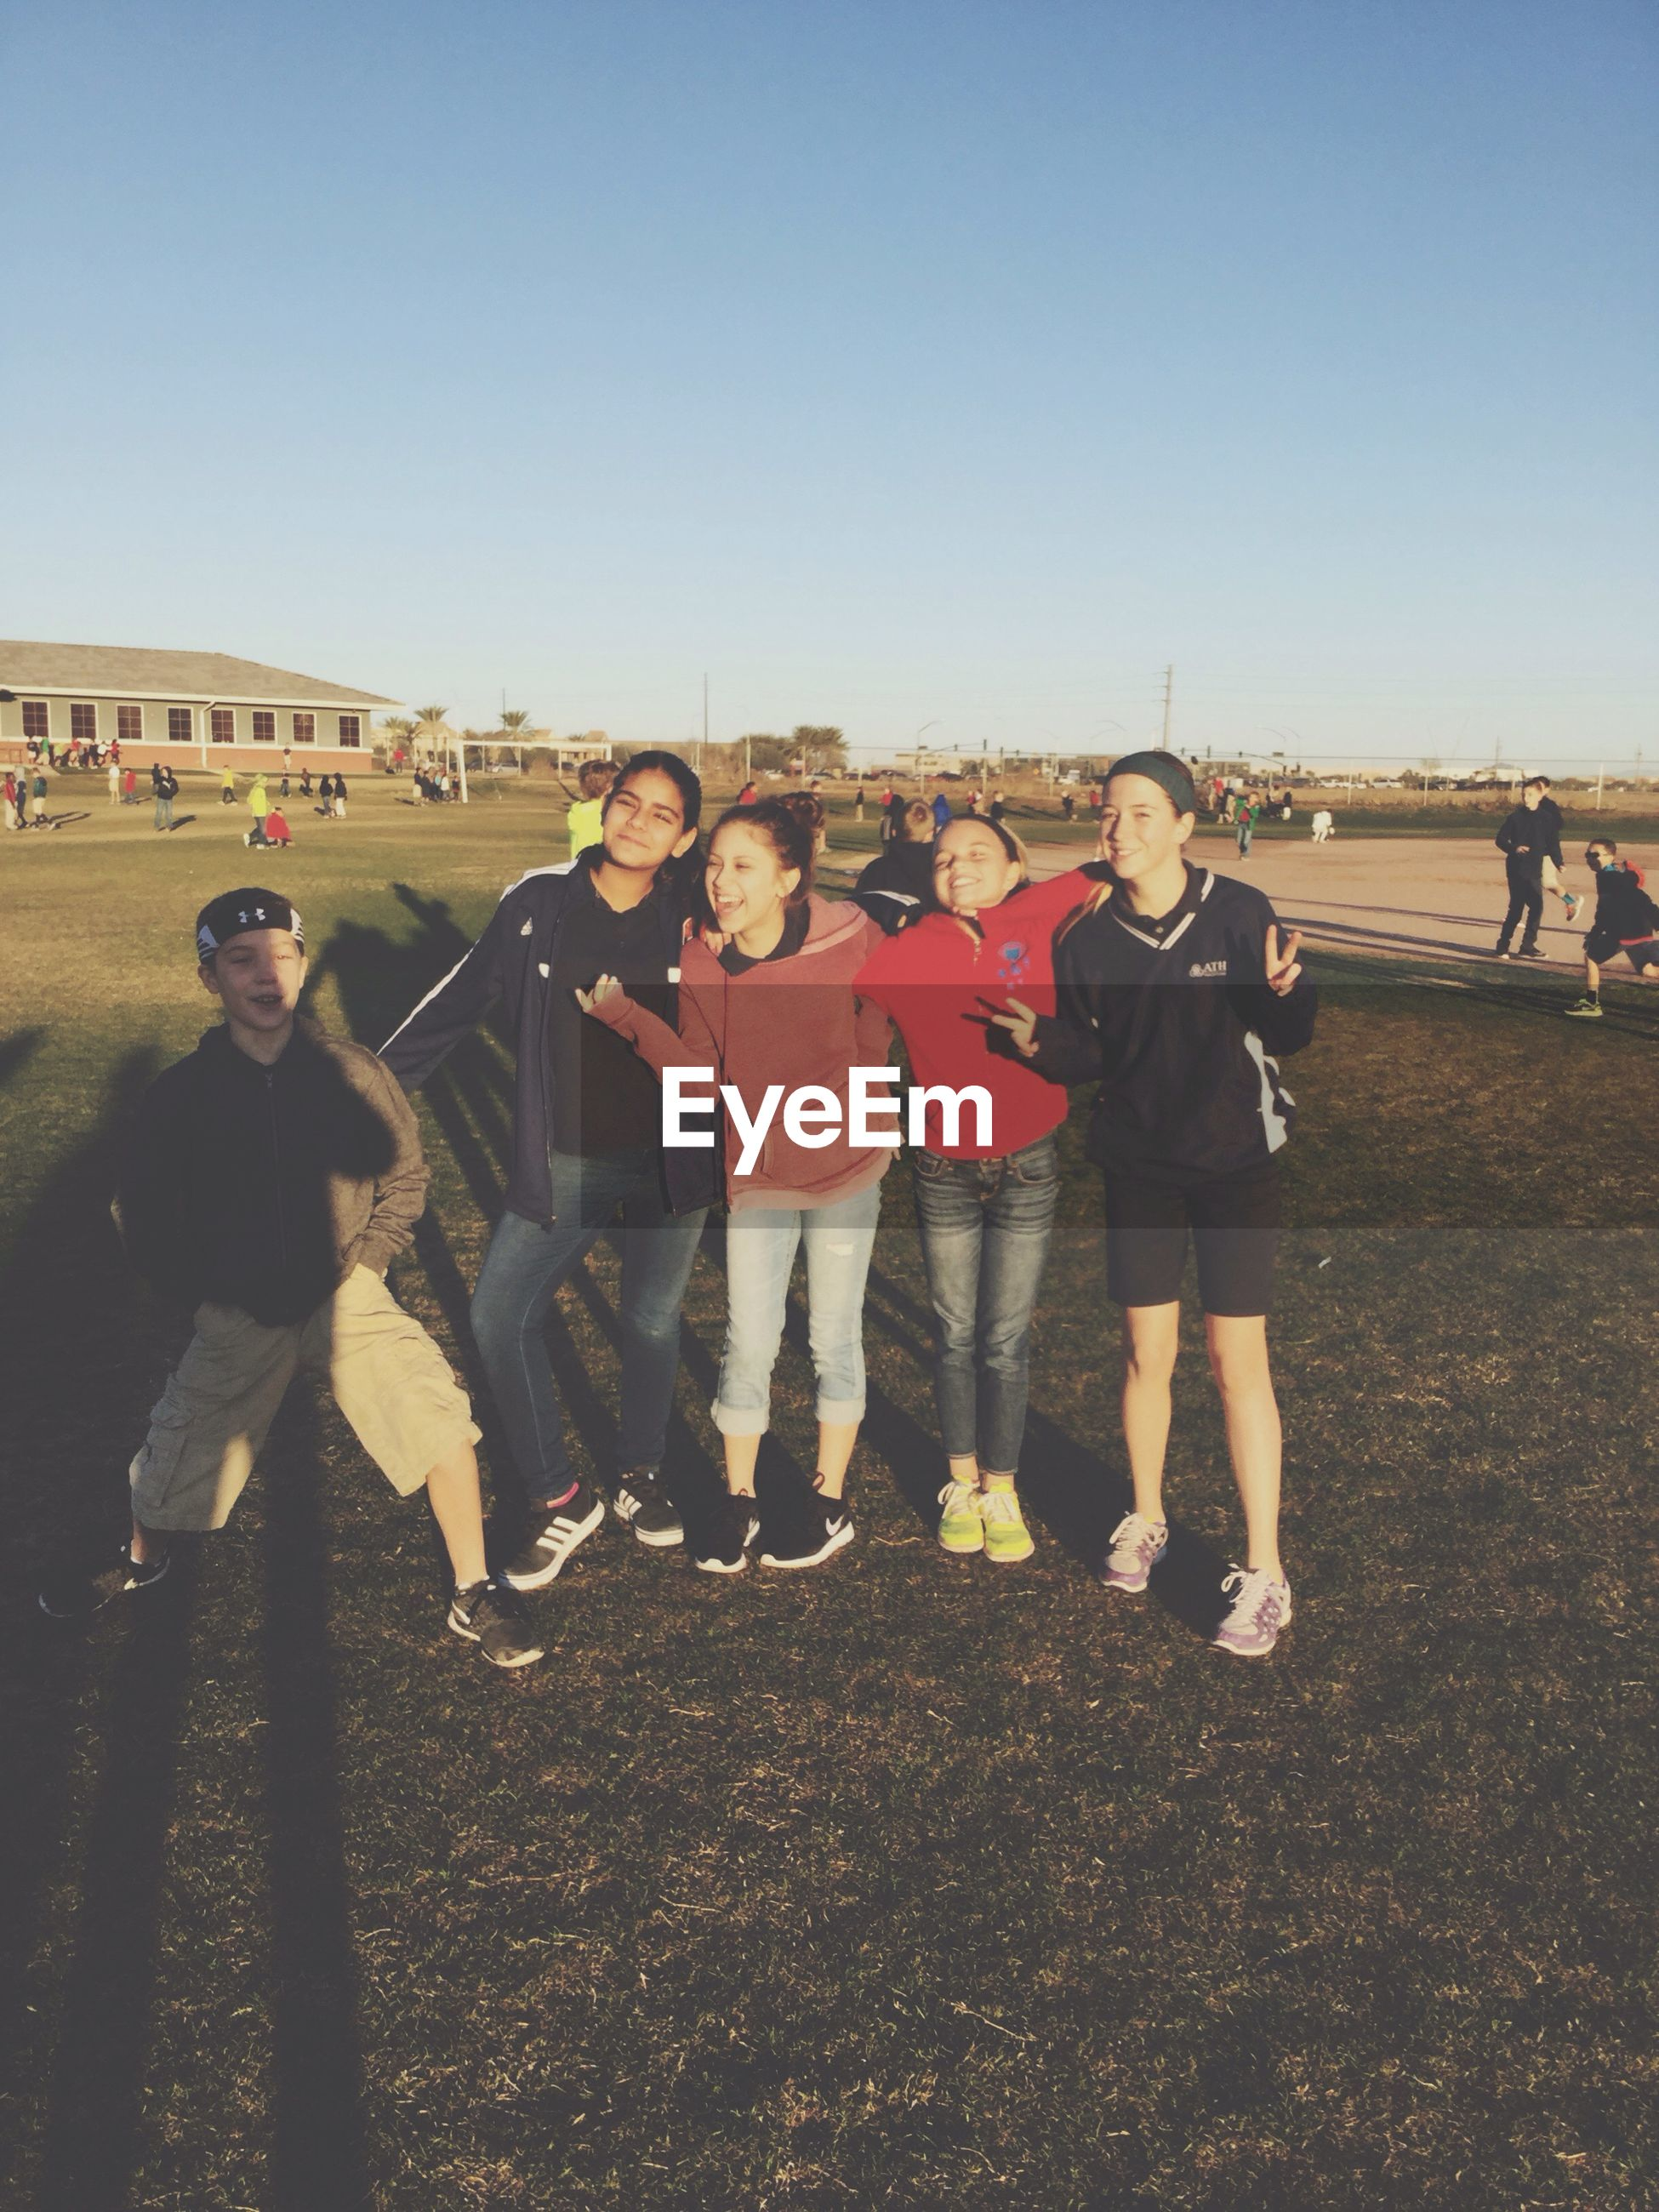 lifestyles, leisure activity, togetherness, clear sky, men, large group of people, person, friendship, casual clothing, bonding, copy space, love, standing, enjoyment, full length, fun, field, outdoors, boys